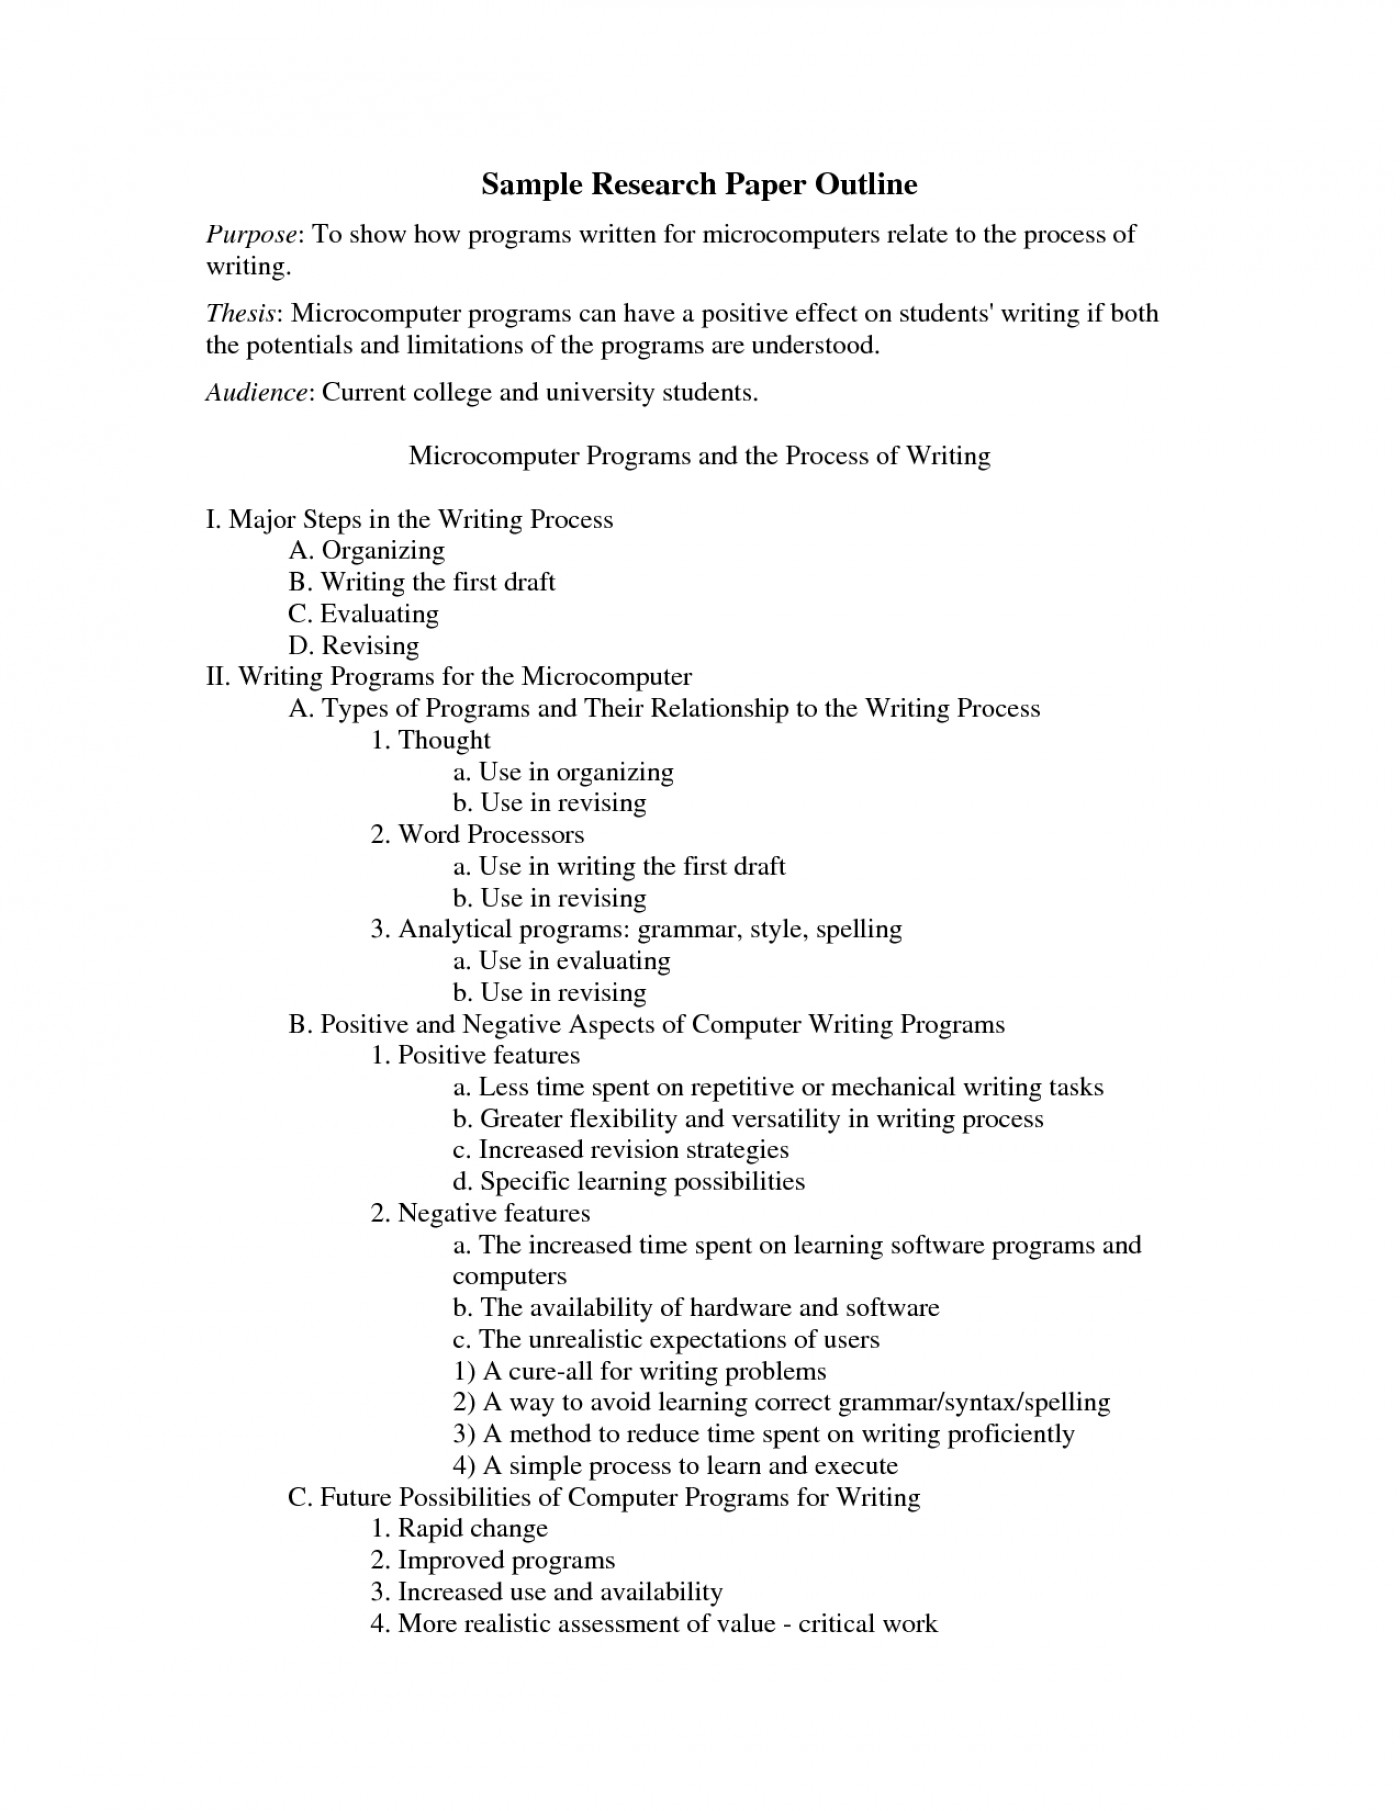 017 College Research Paper Outline Examples 477364 Outlines For Top A Sample Apa Style On Bullying In Schools Writing An 1400